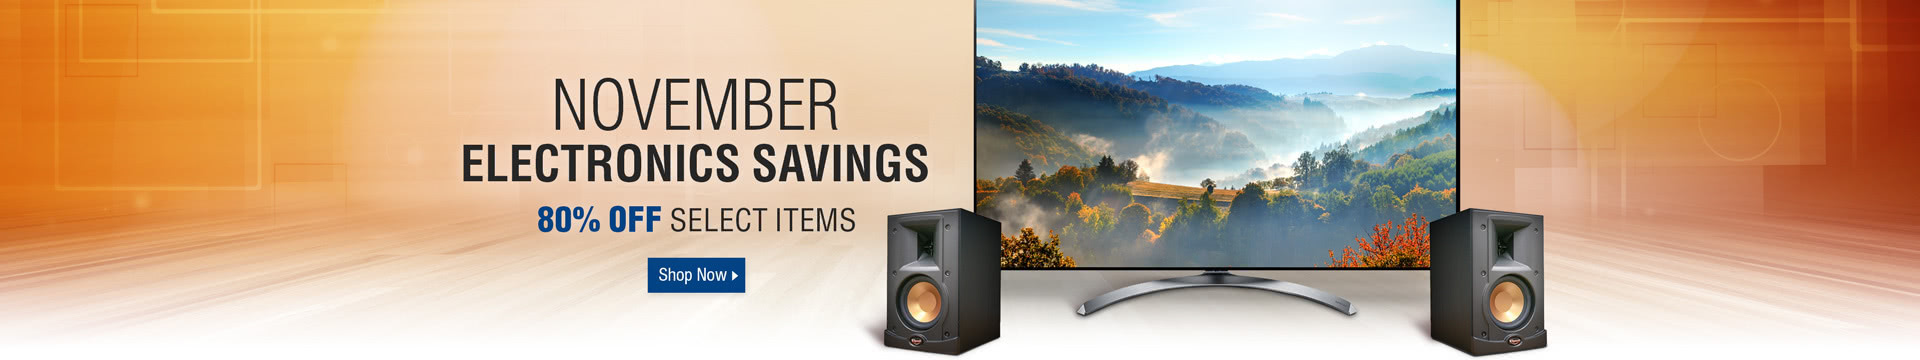 November Electronics Savings